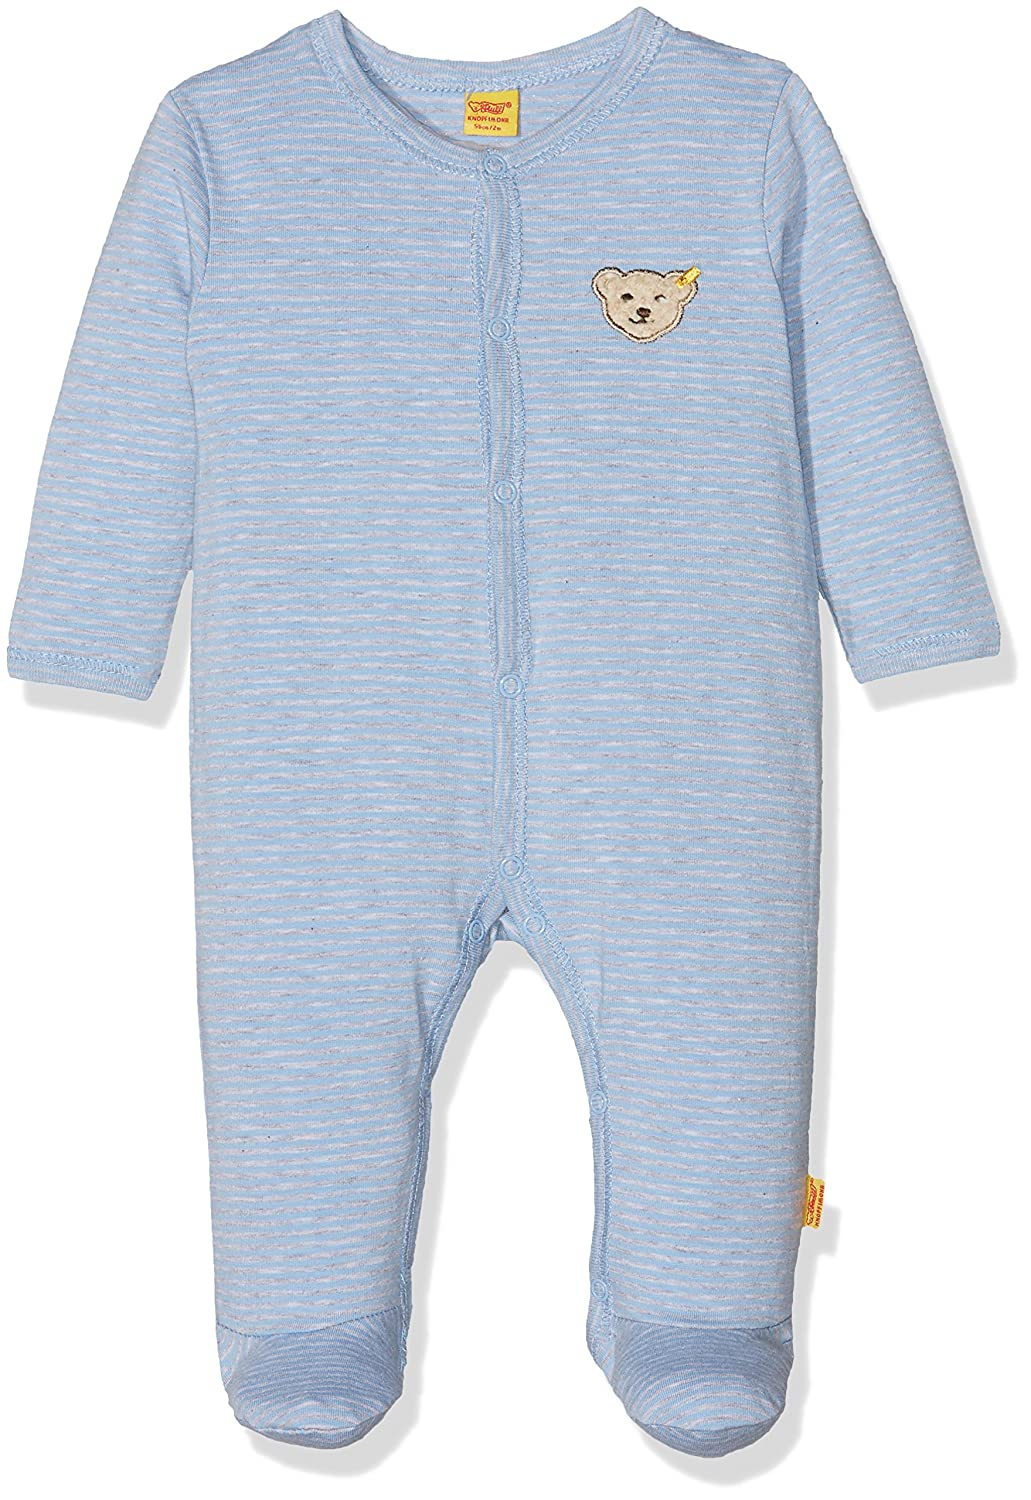 Steiff Footies Steiff Collection 6836711